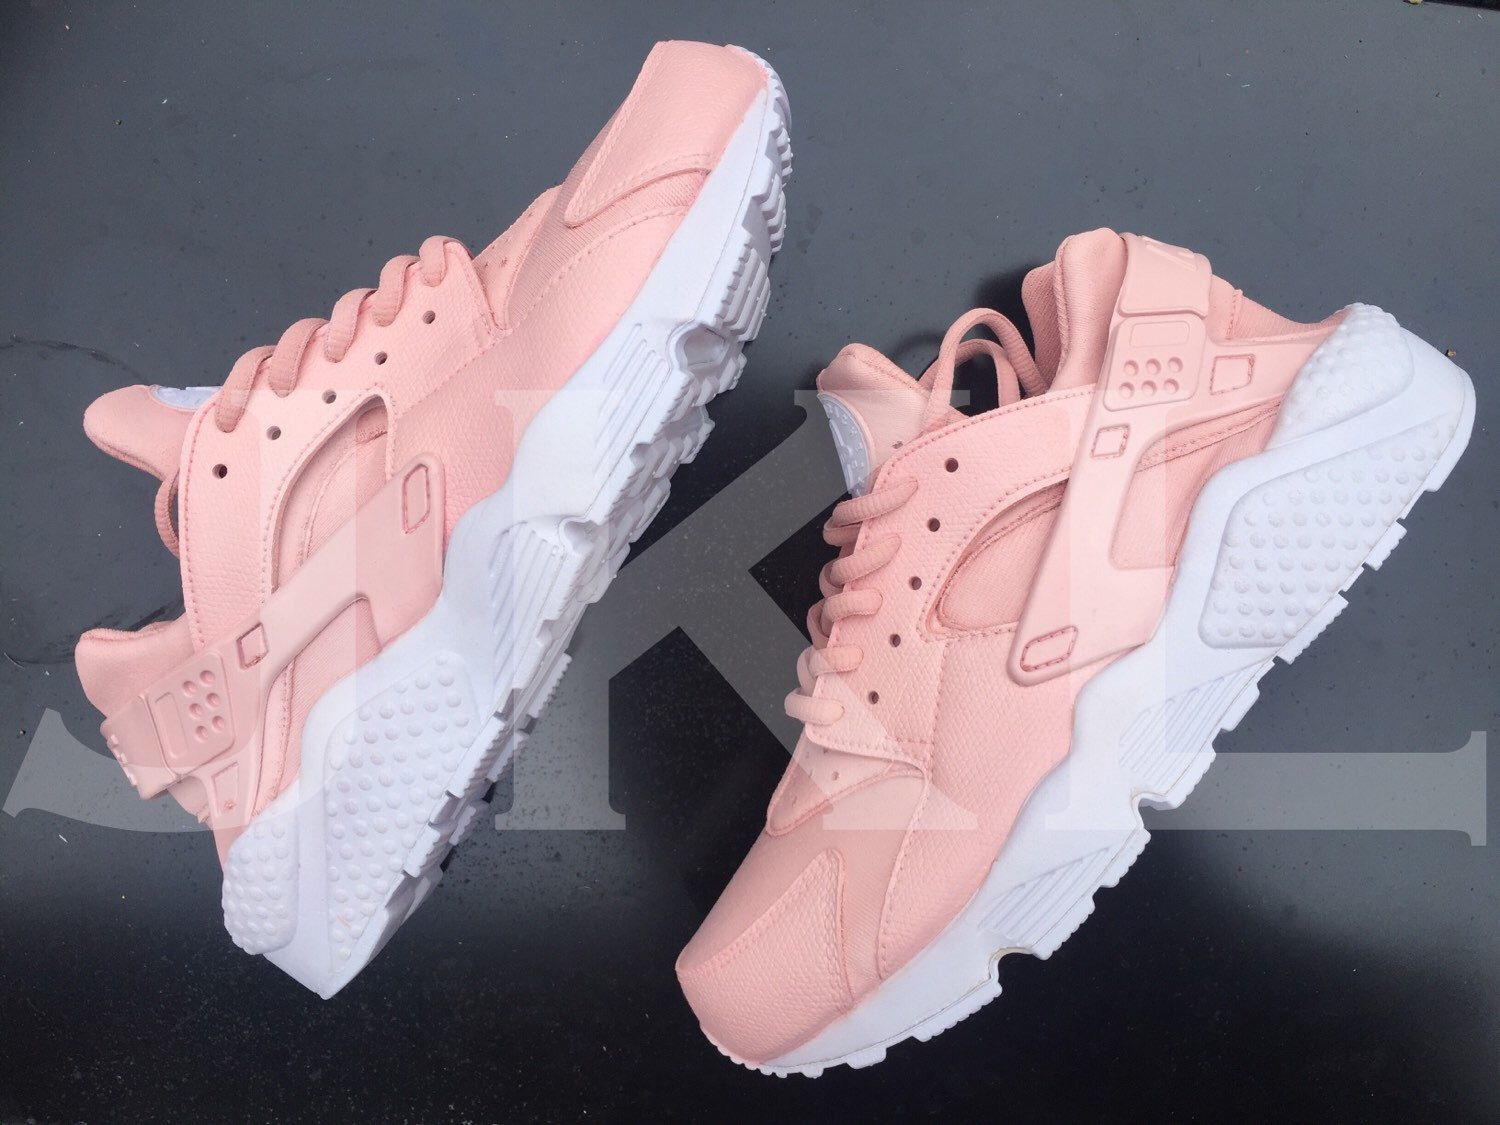 cheap for discount be77b 19300 Rose Nike Huarache customs by JKLcustoms